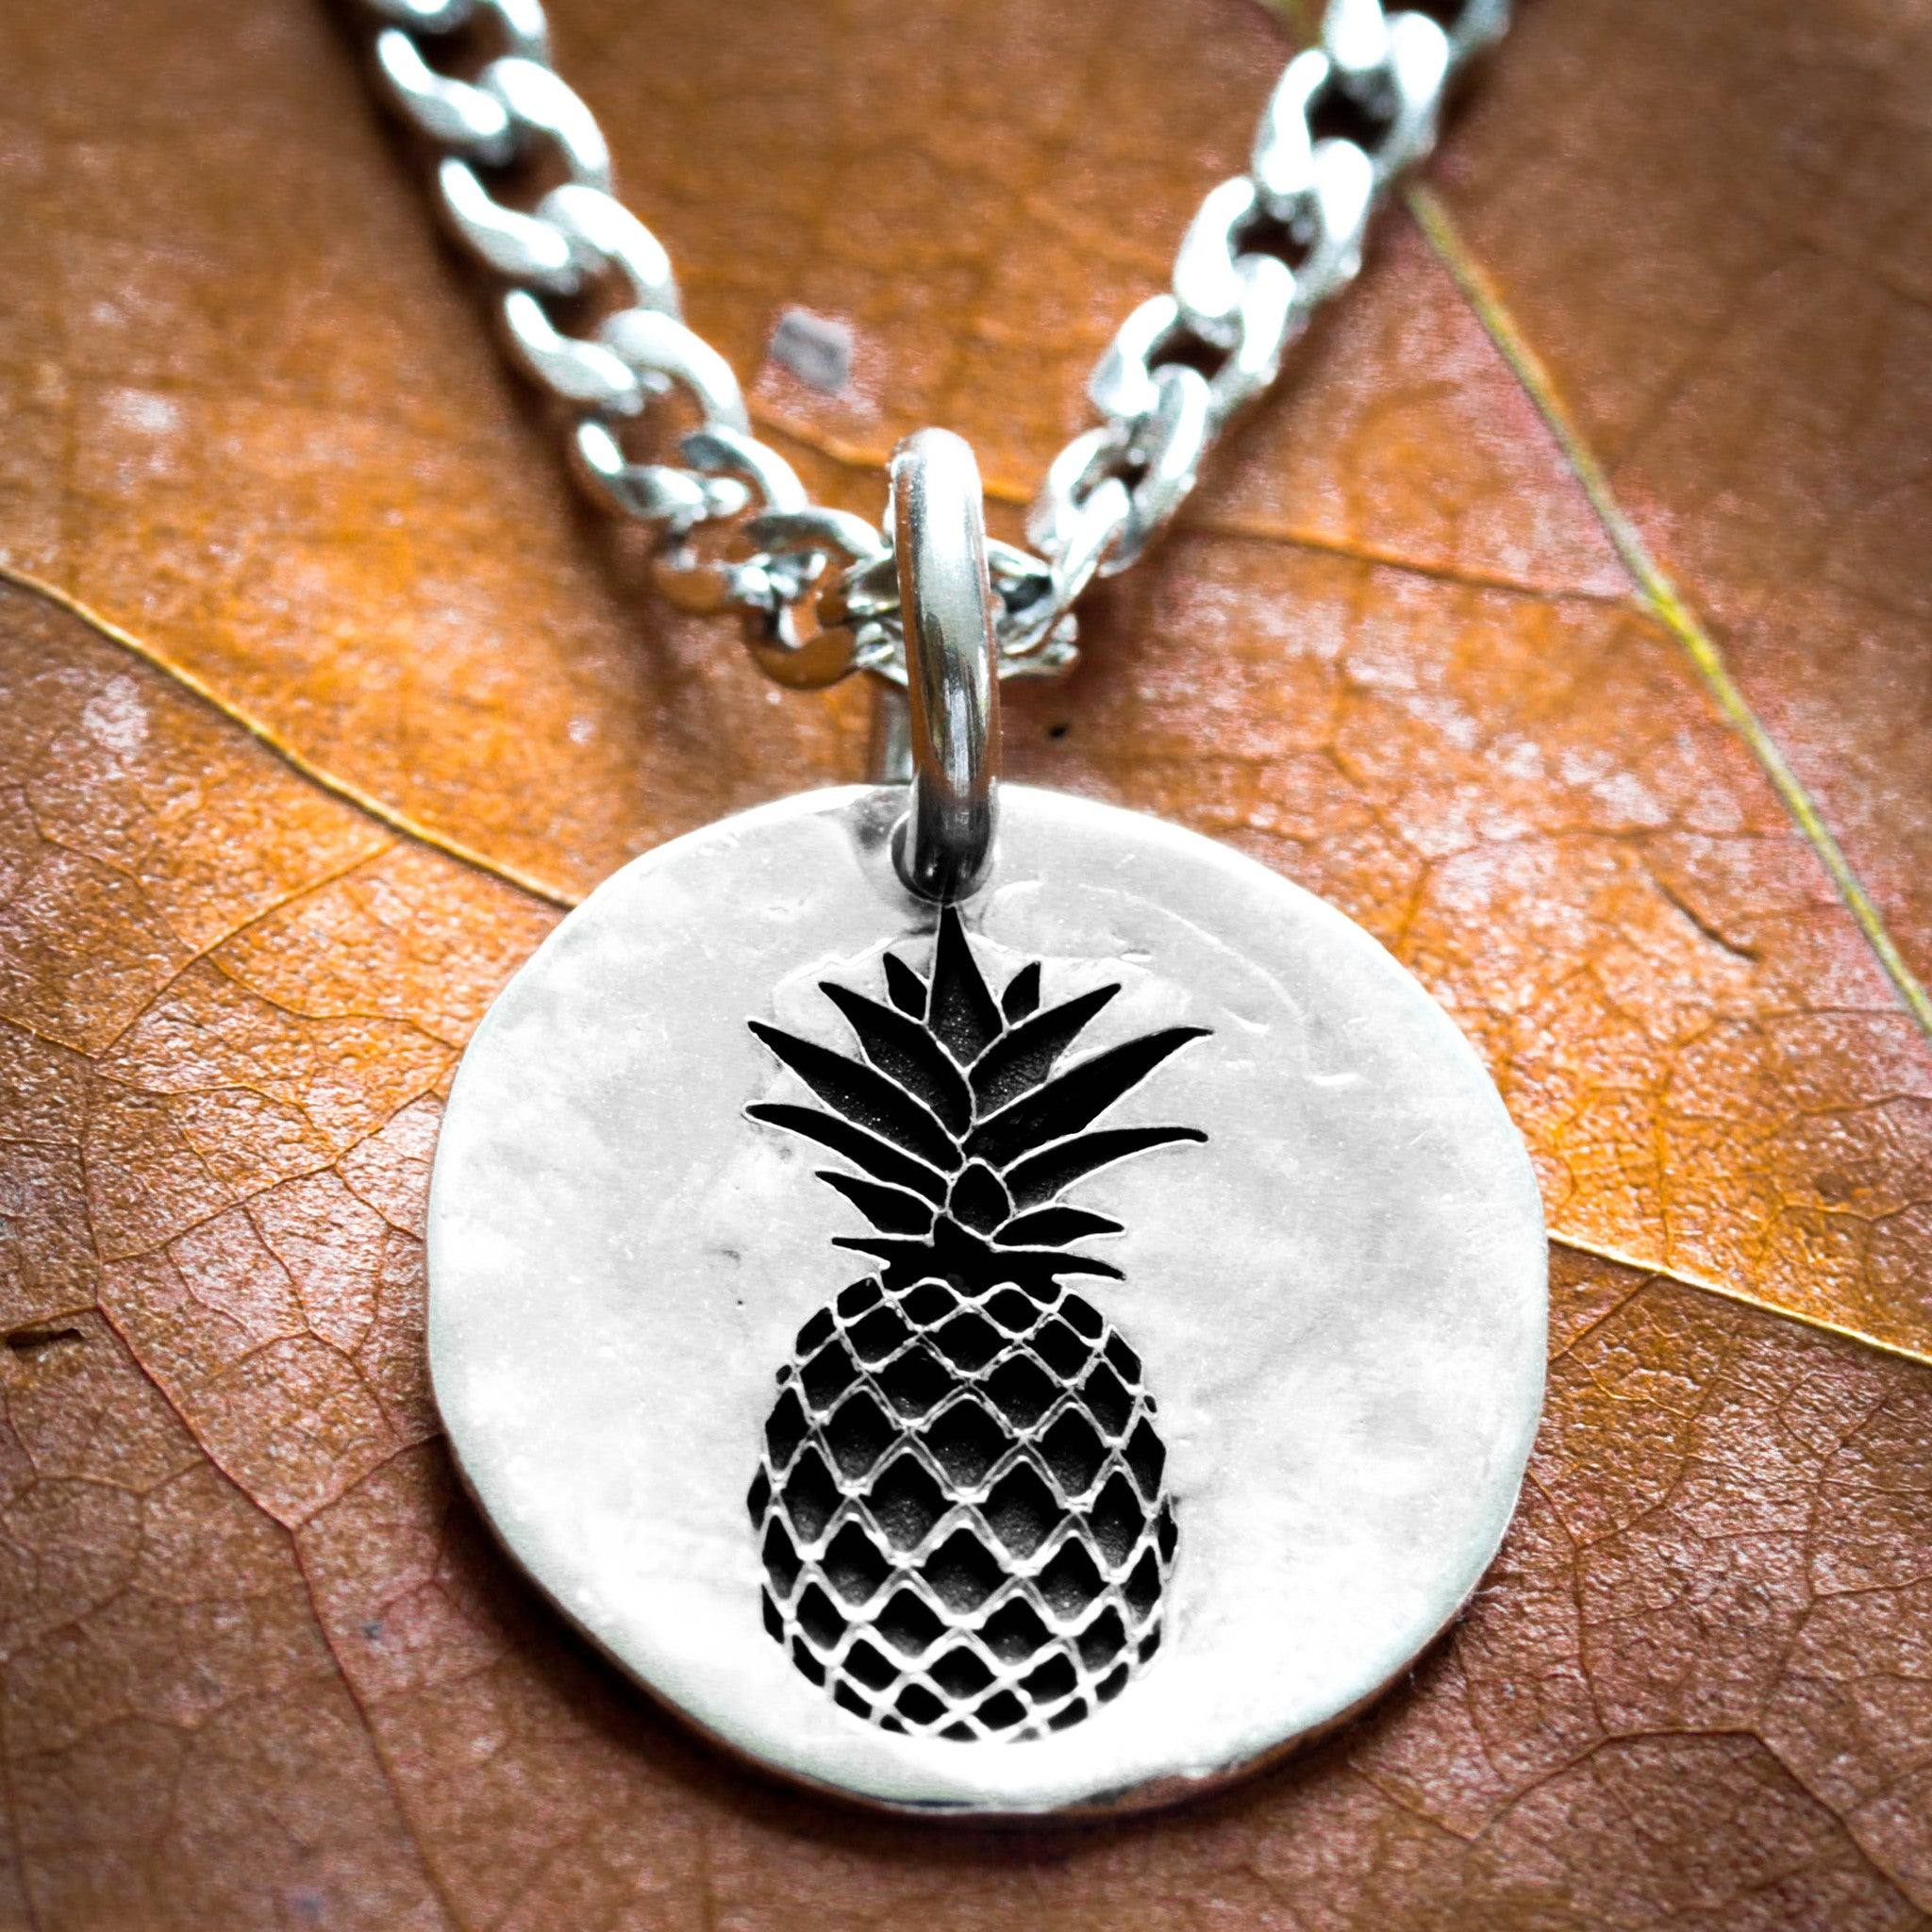 necklace brushed fruit spinningdaisy metal products pineapple handcrafted